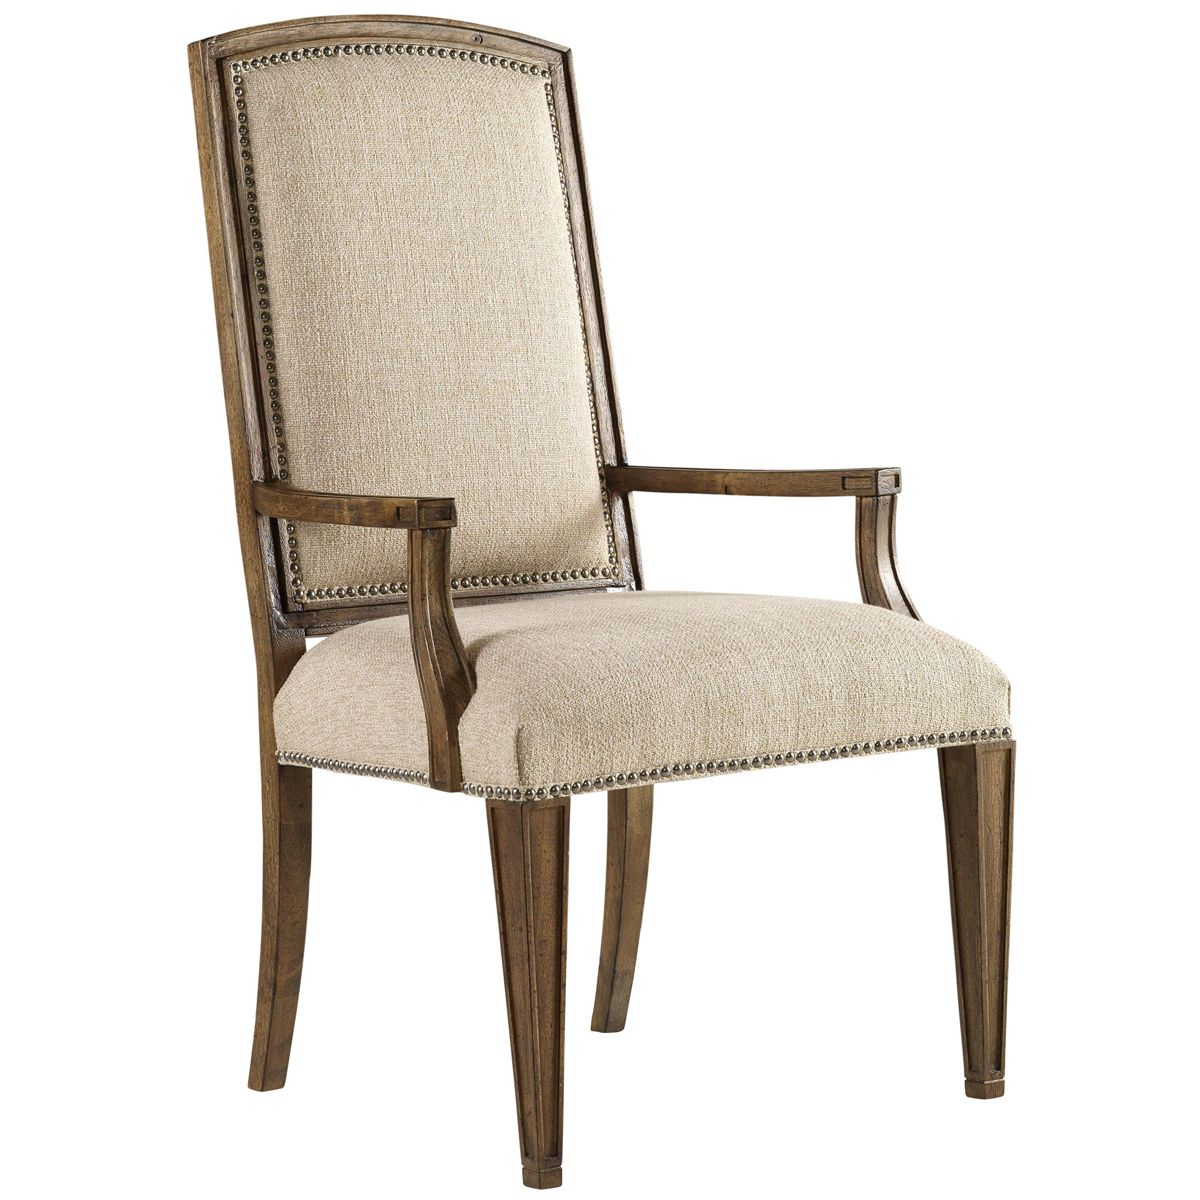 Delicieux Shop For Hooker Furniture Sanctuary Upholstered Arm Chair, And Other Dining  Room Chairs Furniture. Pursue Serenity At Home. Create Your Own Personal ...